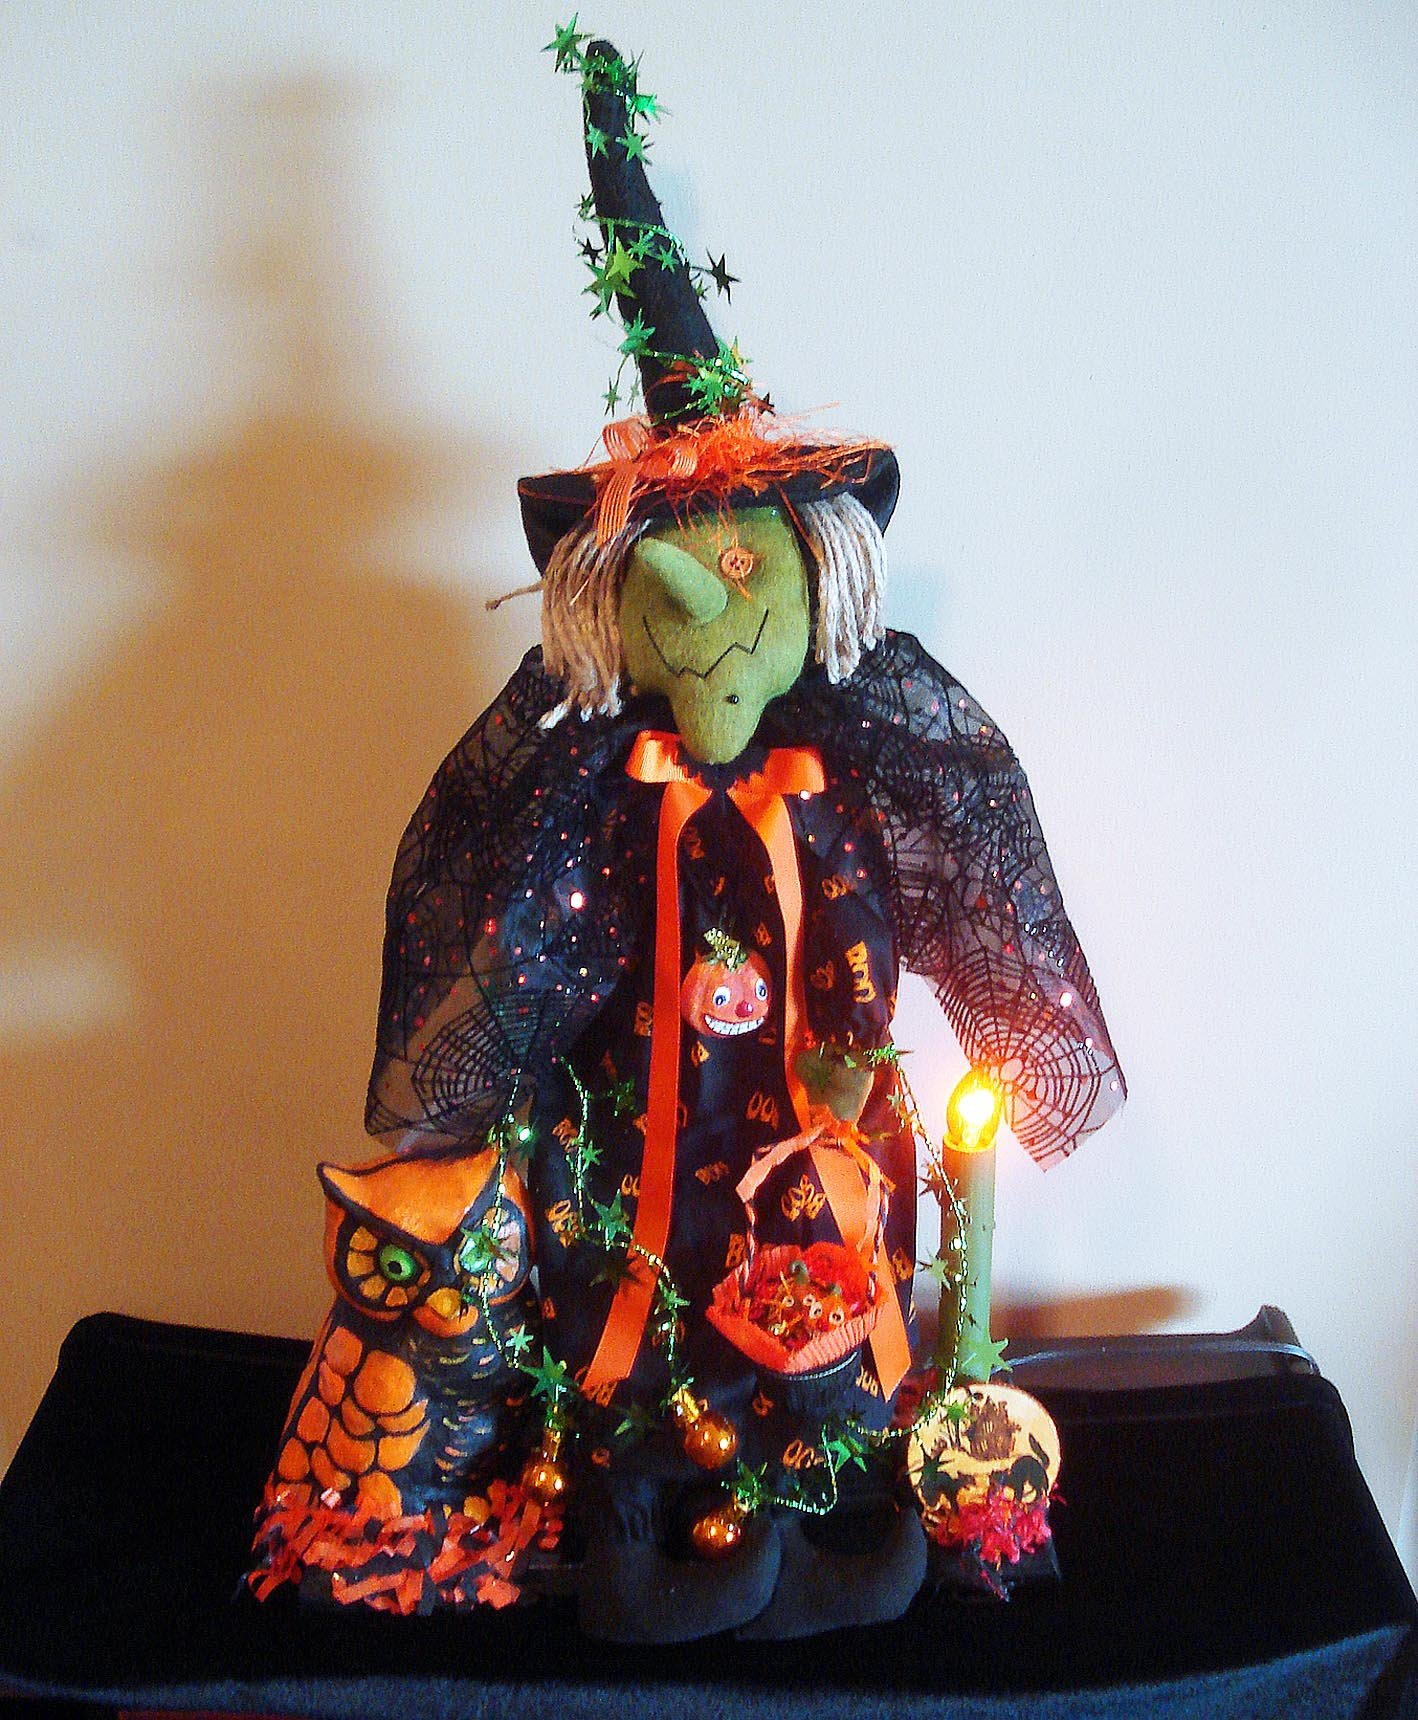 Clearance Sale - Halloween - Lighted Wicked Witch and Owl Halloween Sculpture By Christopher James - Illuminated Halloween Decoration - Made in America